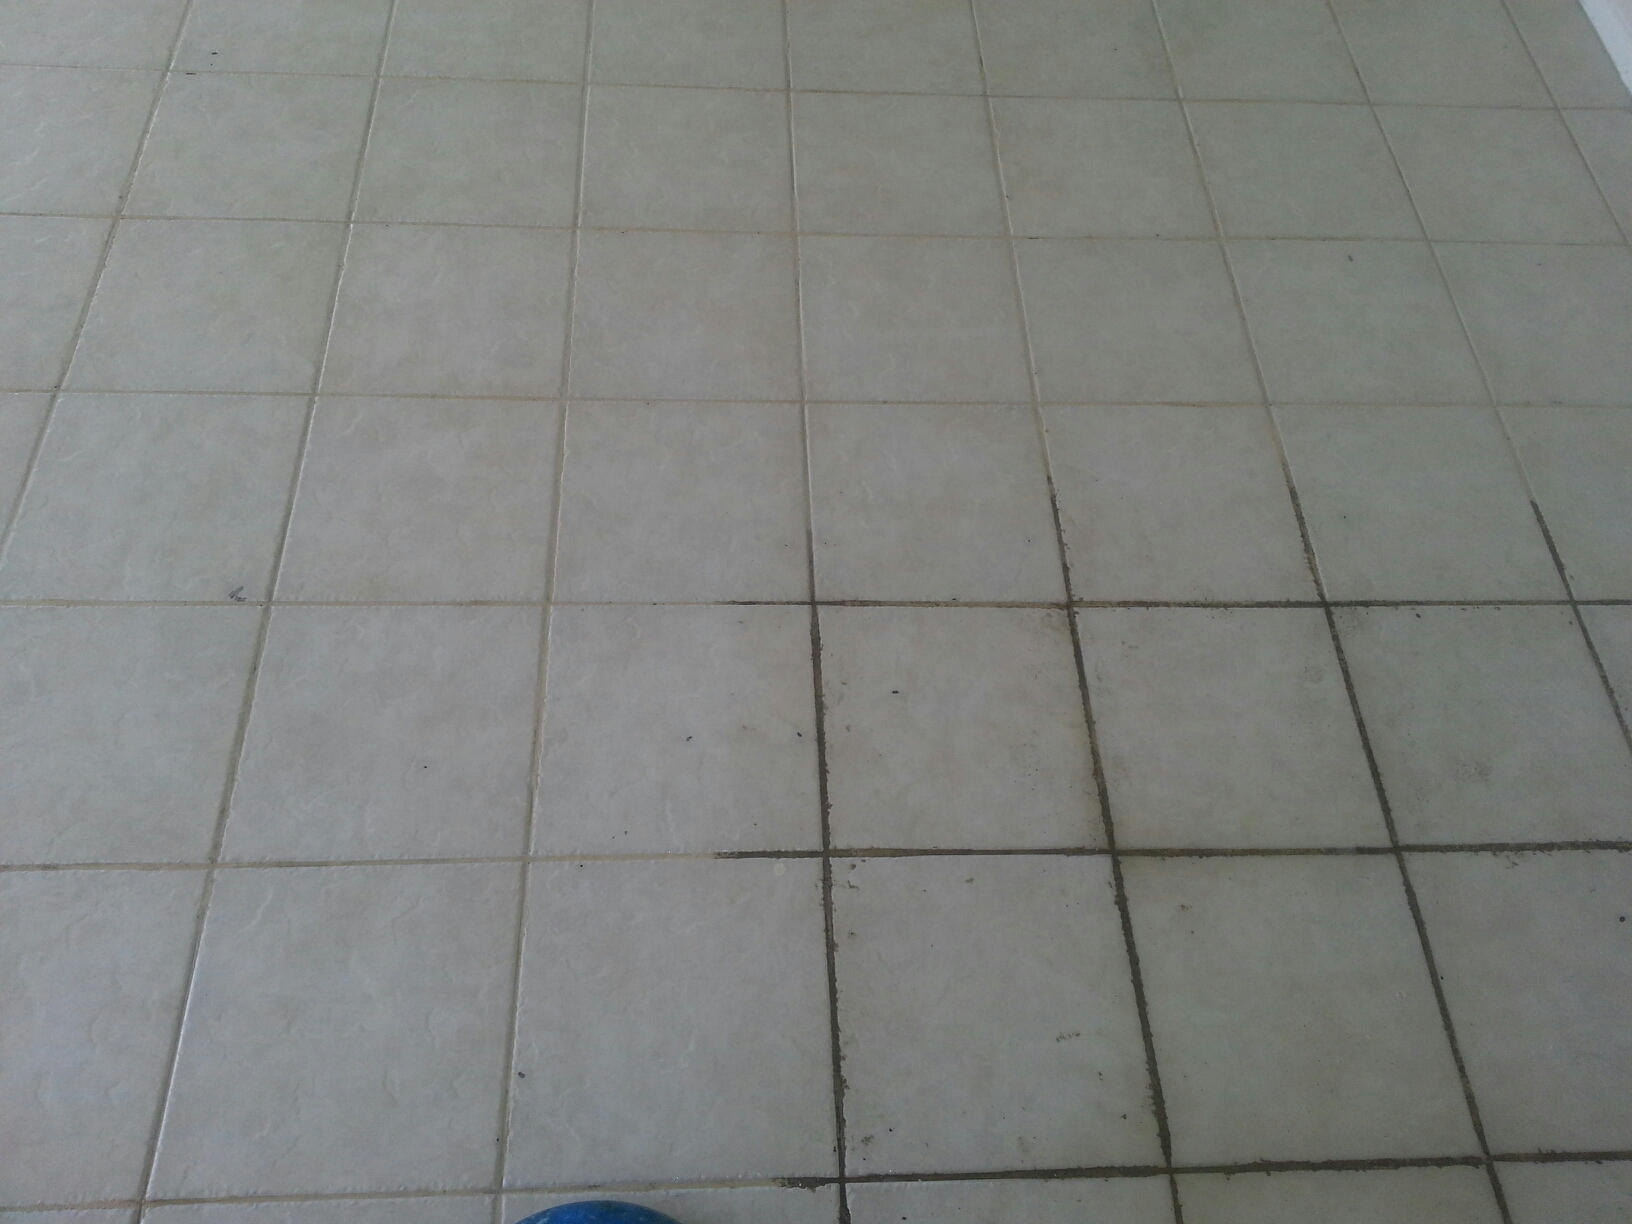 Hollywood, FL - Tile and grout cleaning